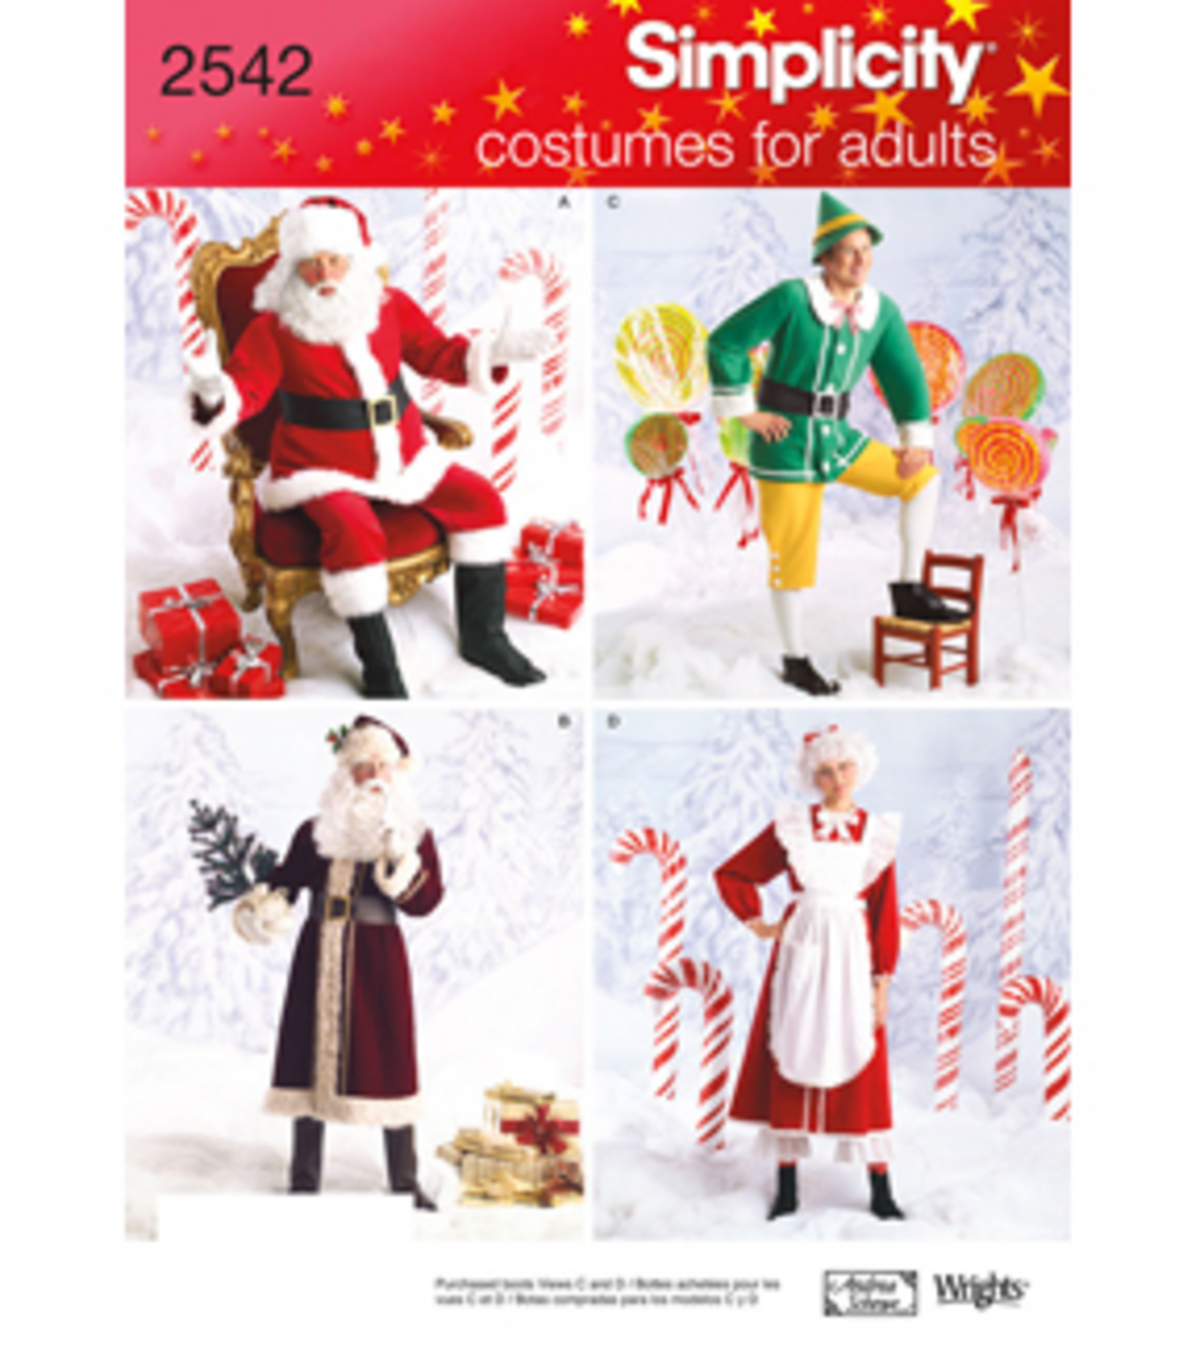 Simplicity Pattern 2542 Adult Christmas Costumes, Sizes Large-xl